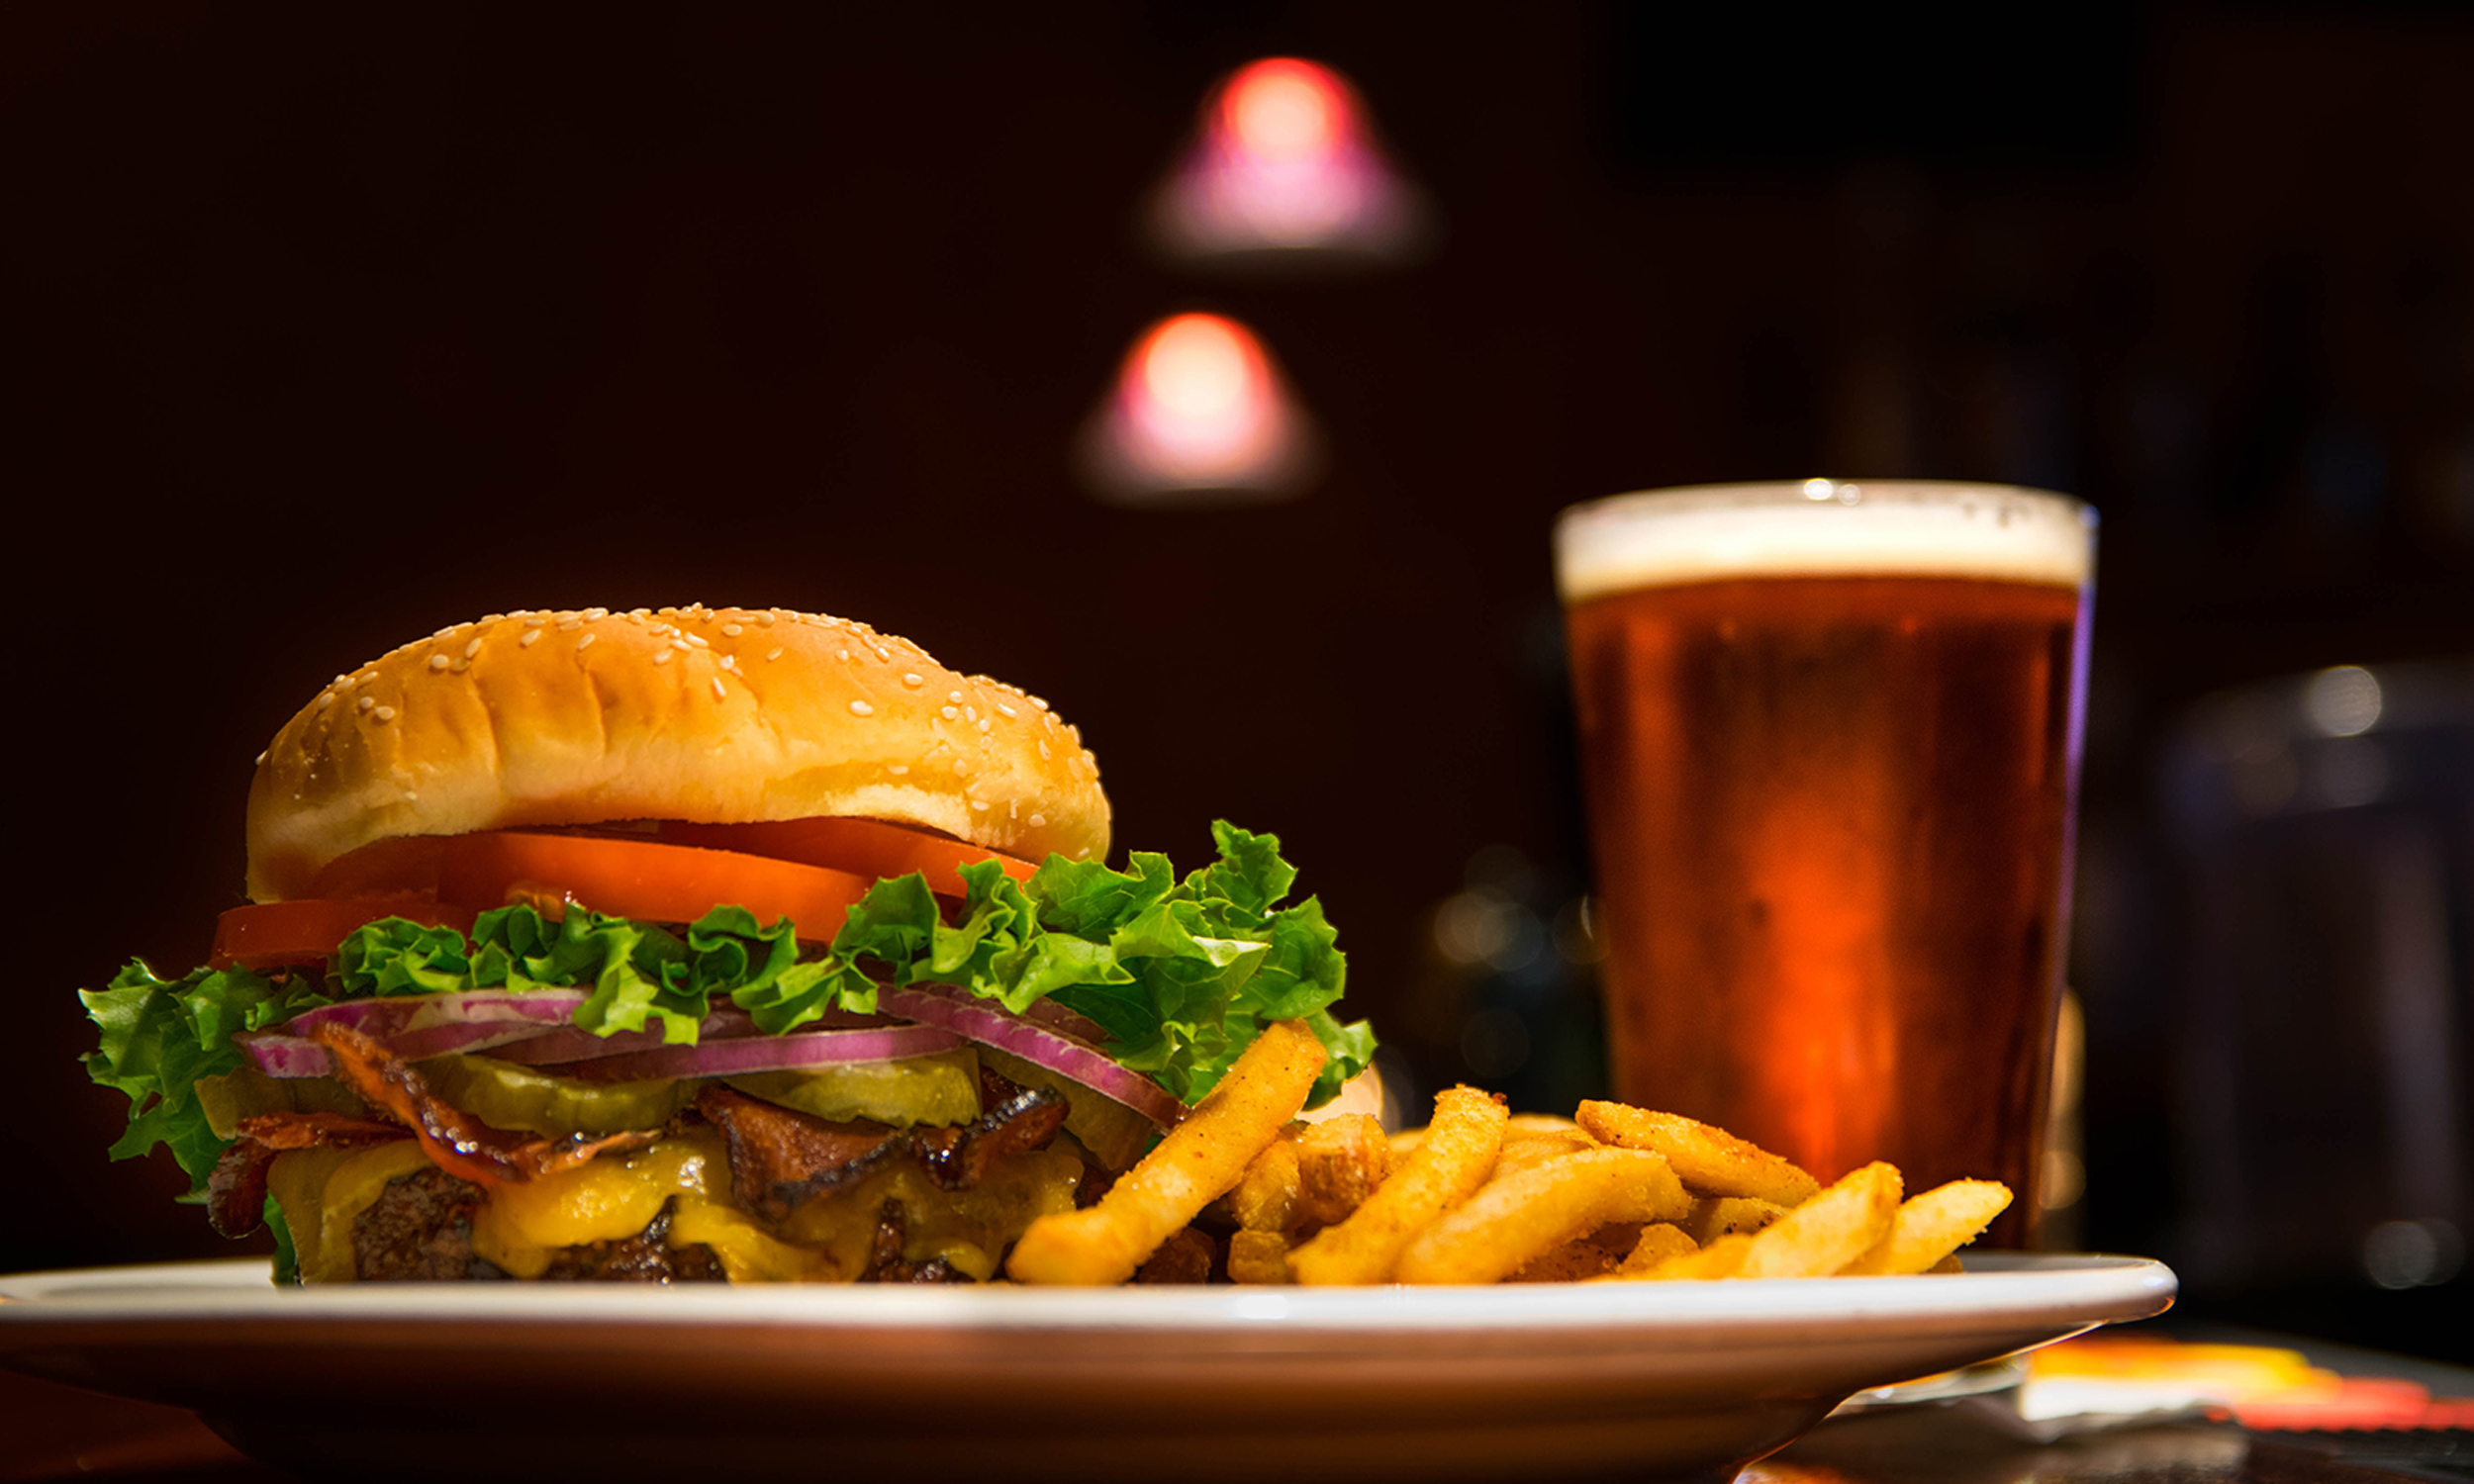 Beer and Burger image